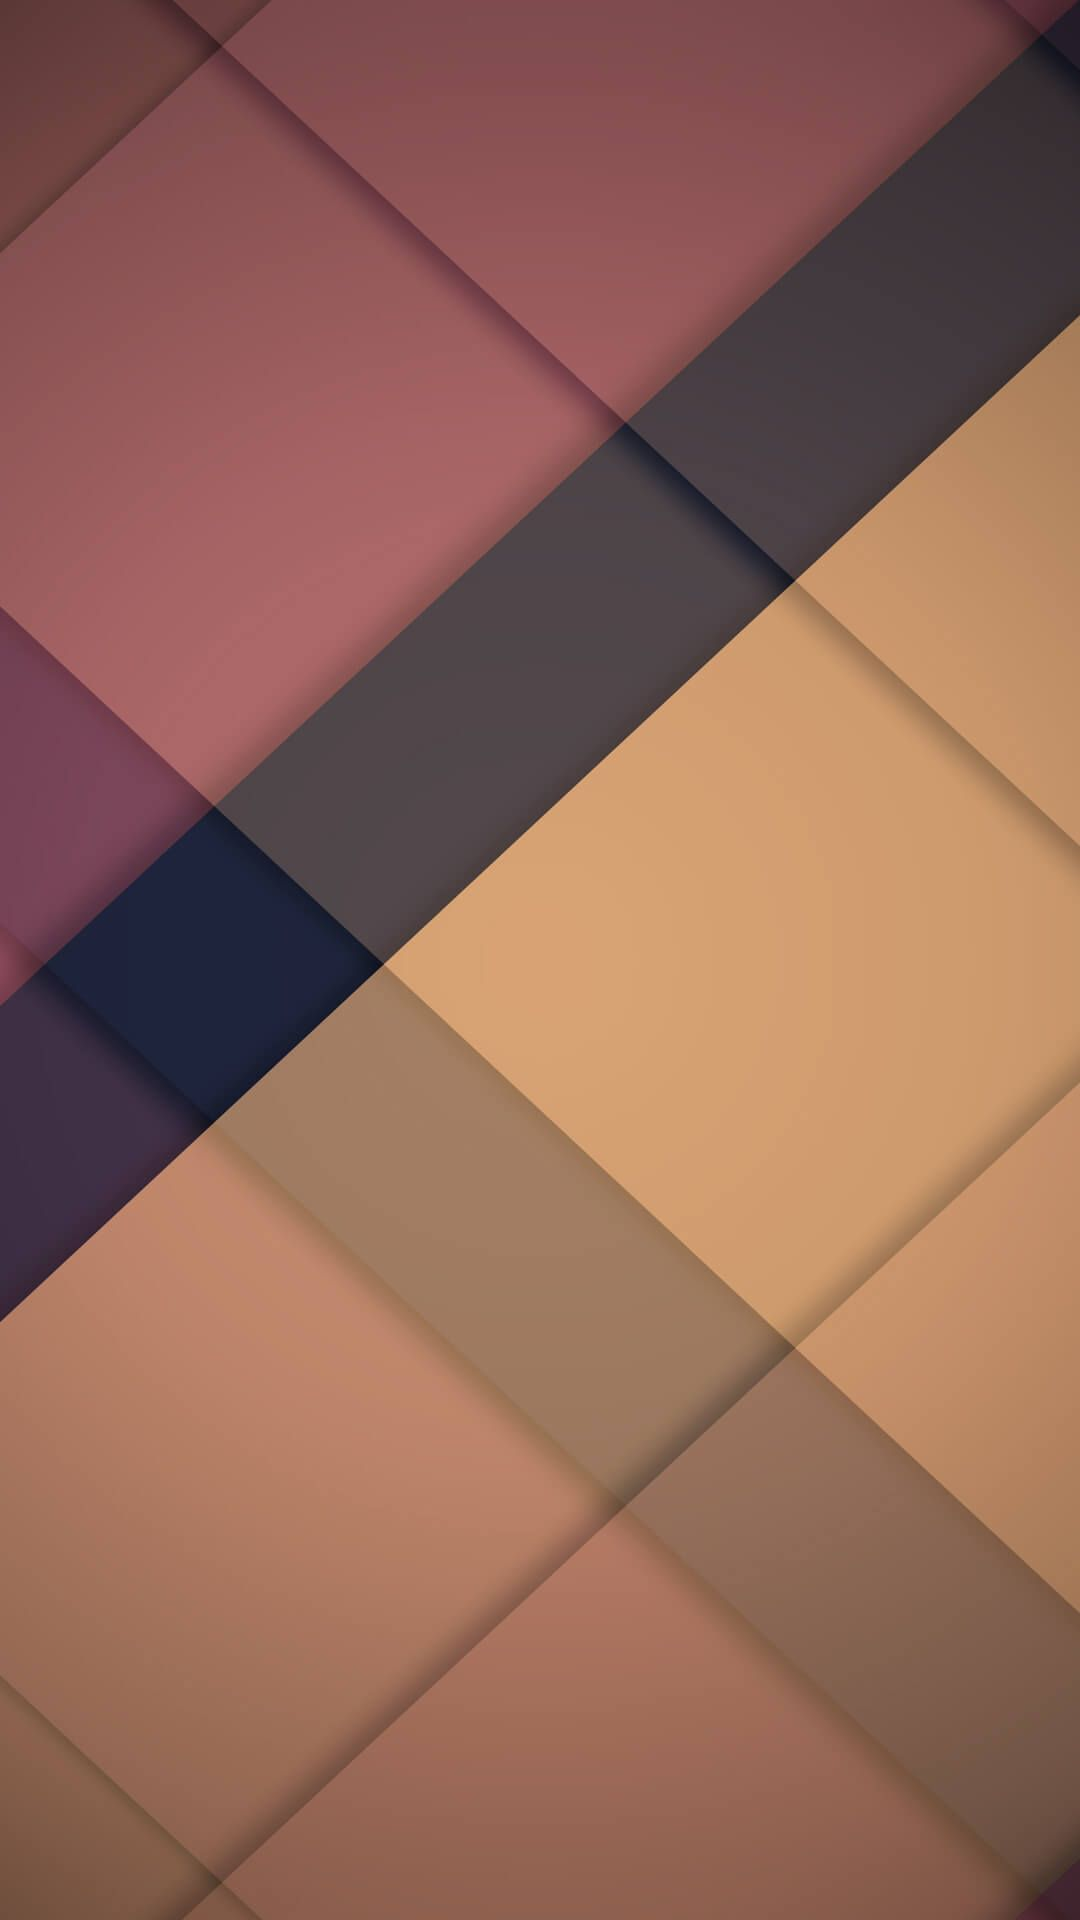 httpwwwvactualpaperscomgallerycolorful material design hd 1080x1920